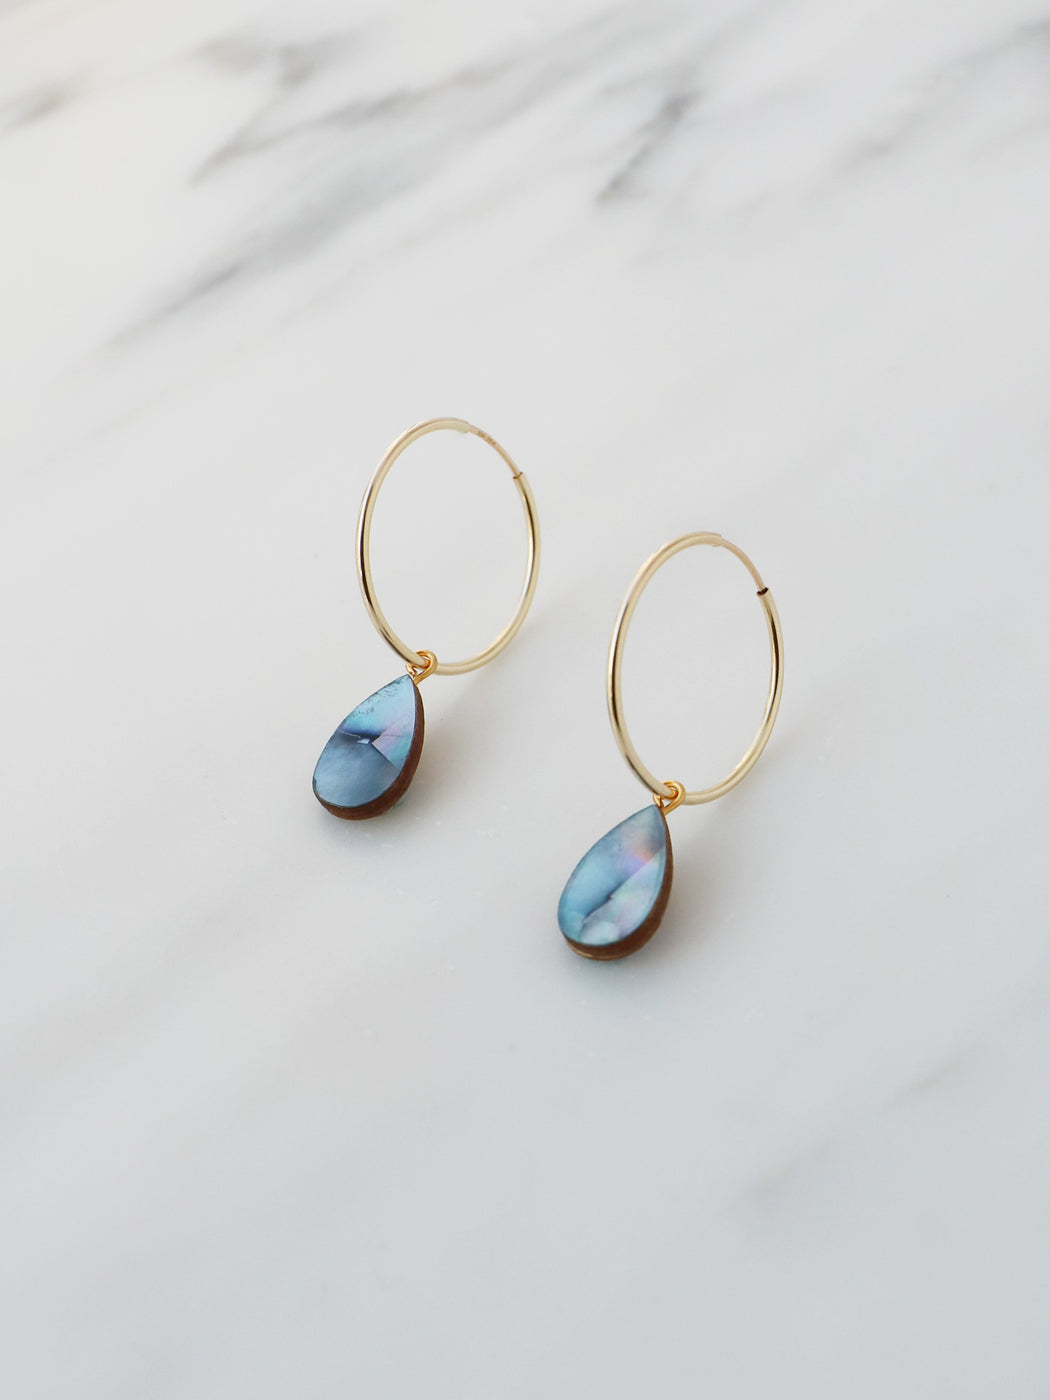 Raindrop Hoops in Blue Mother of Pearl